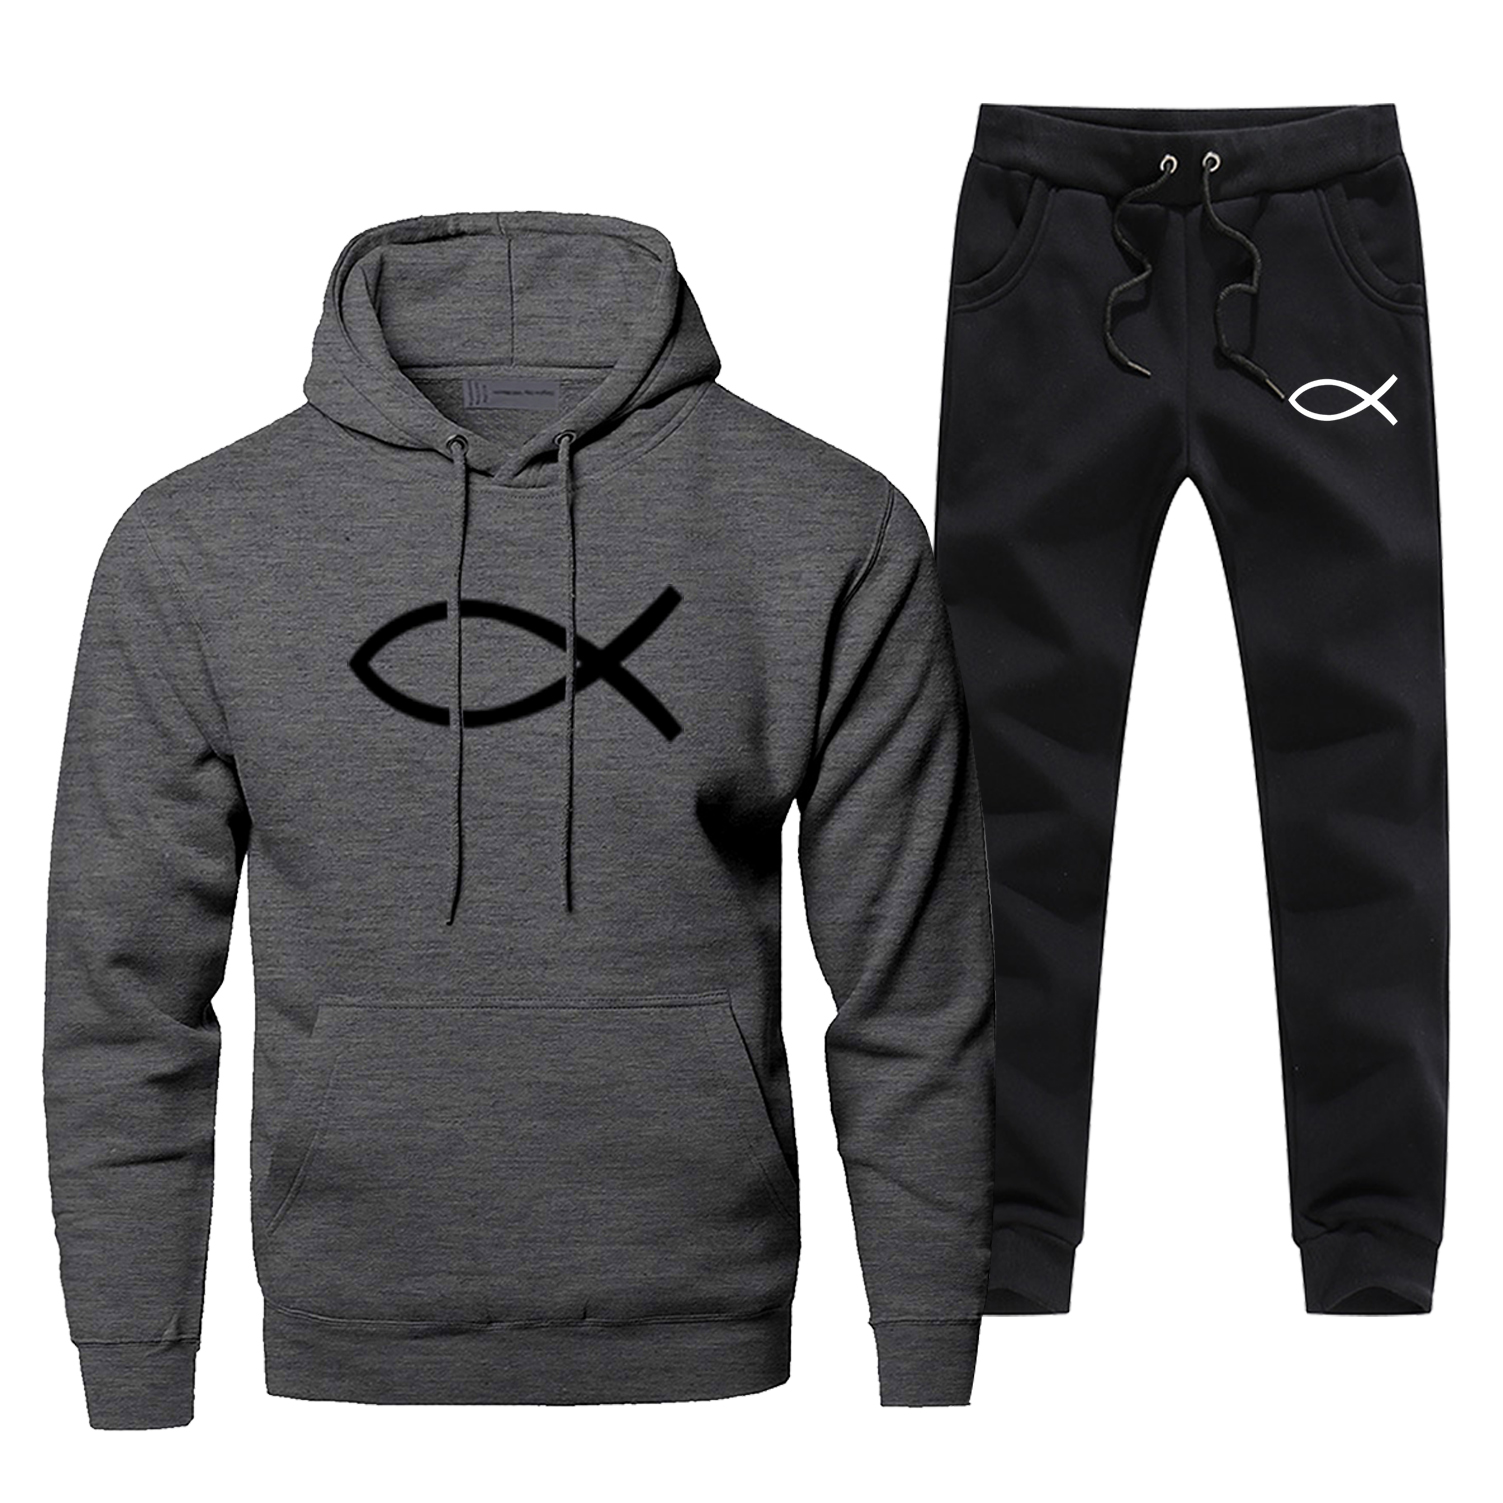 Jesus Fish Mens Hoodies Sets Two Piece Pant Cristianismo Hoodie Sweatshirt Sweatpants Streetwear Sportswear Belief Sweatshirts